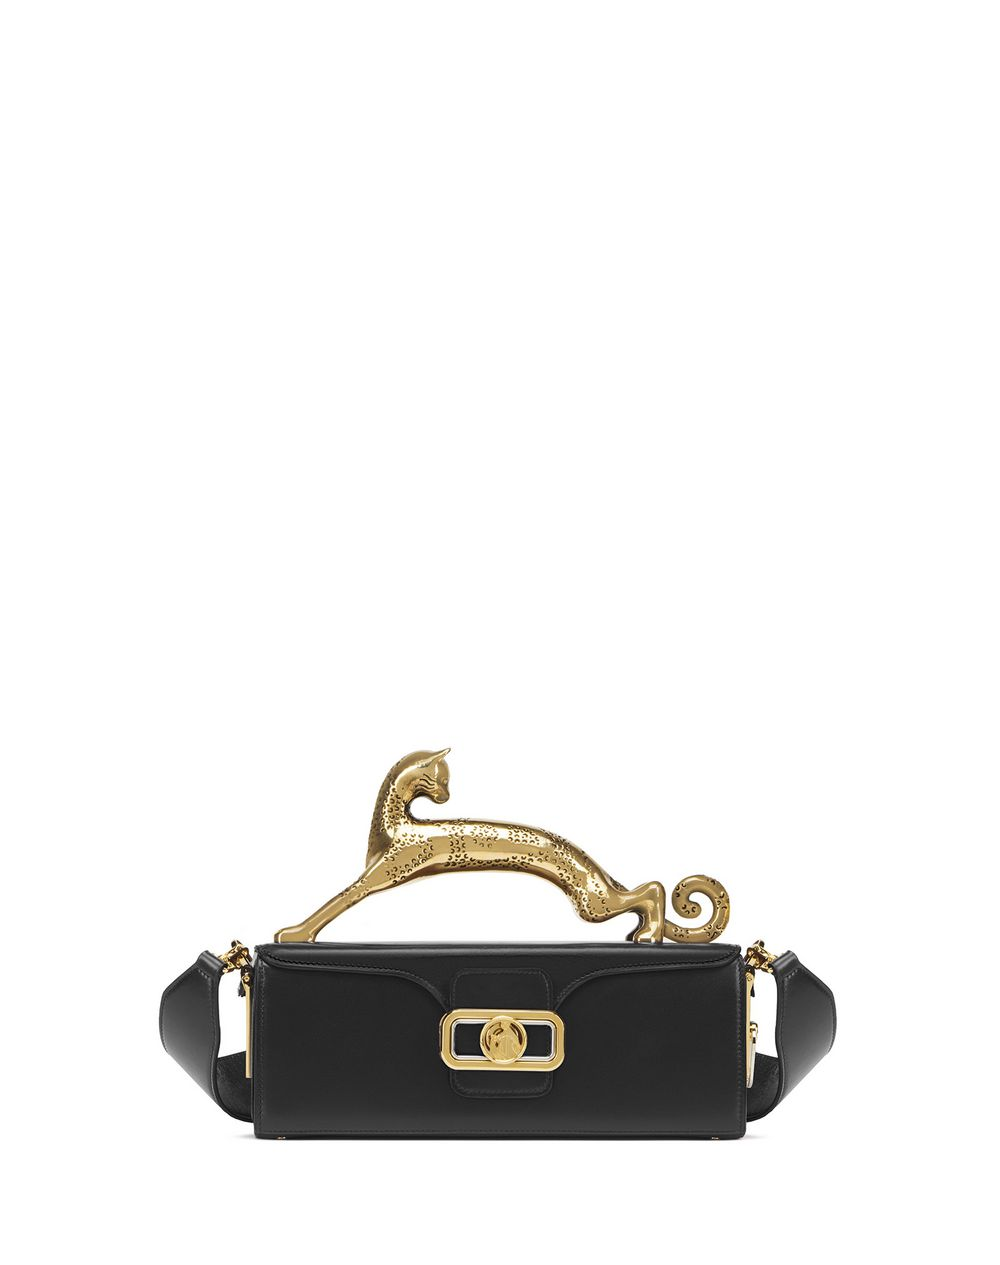 PENCIL CAT BAG - Lanvin